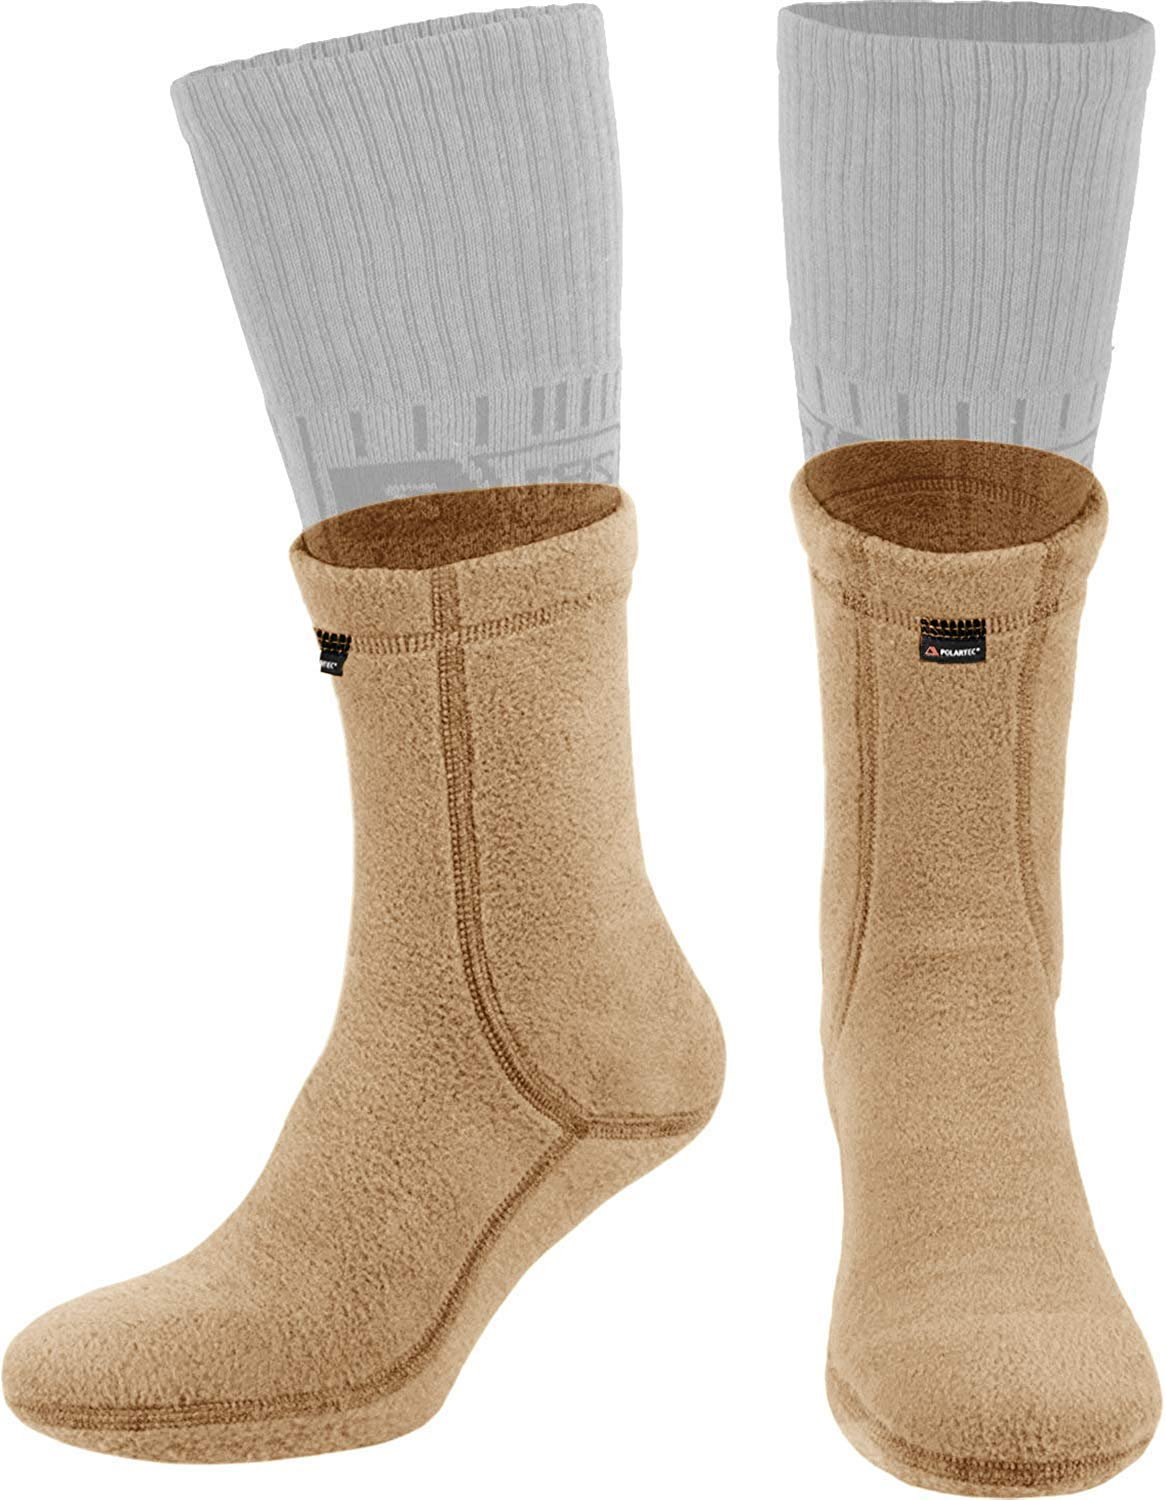 281Z Outdoor Warm Liners Boot Socks - Military Tactical Hiking Sport - Polartec Fleece Winter Socks (X-Large, Coyote Brown)